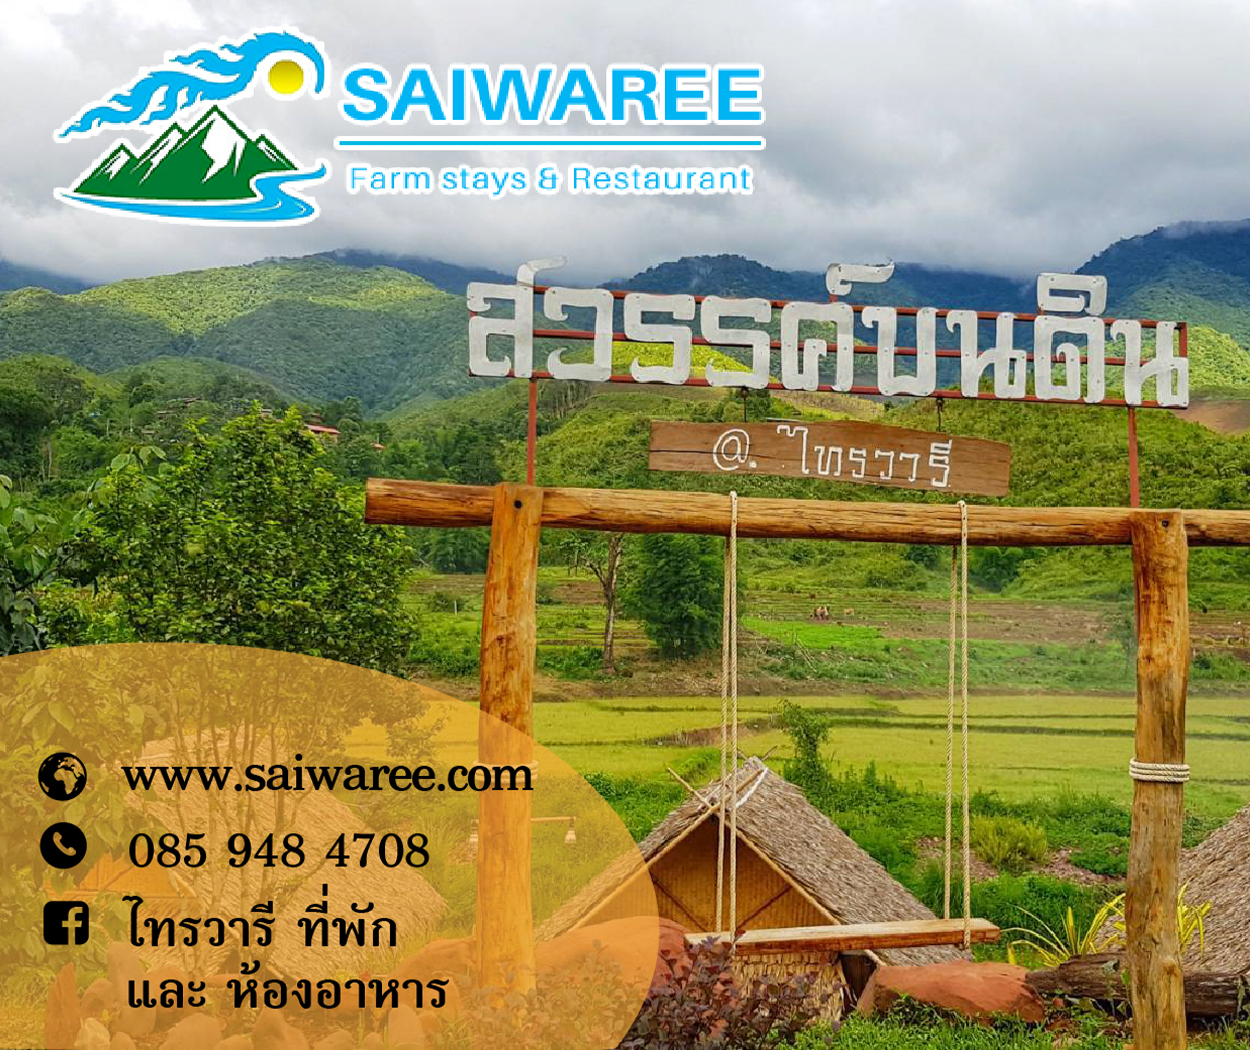 Saiwaree Farm Stays